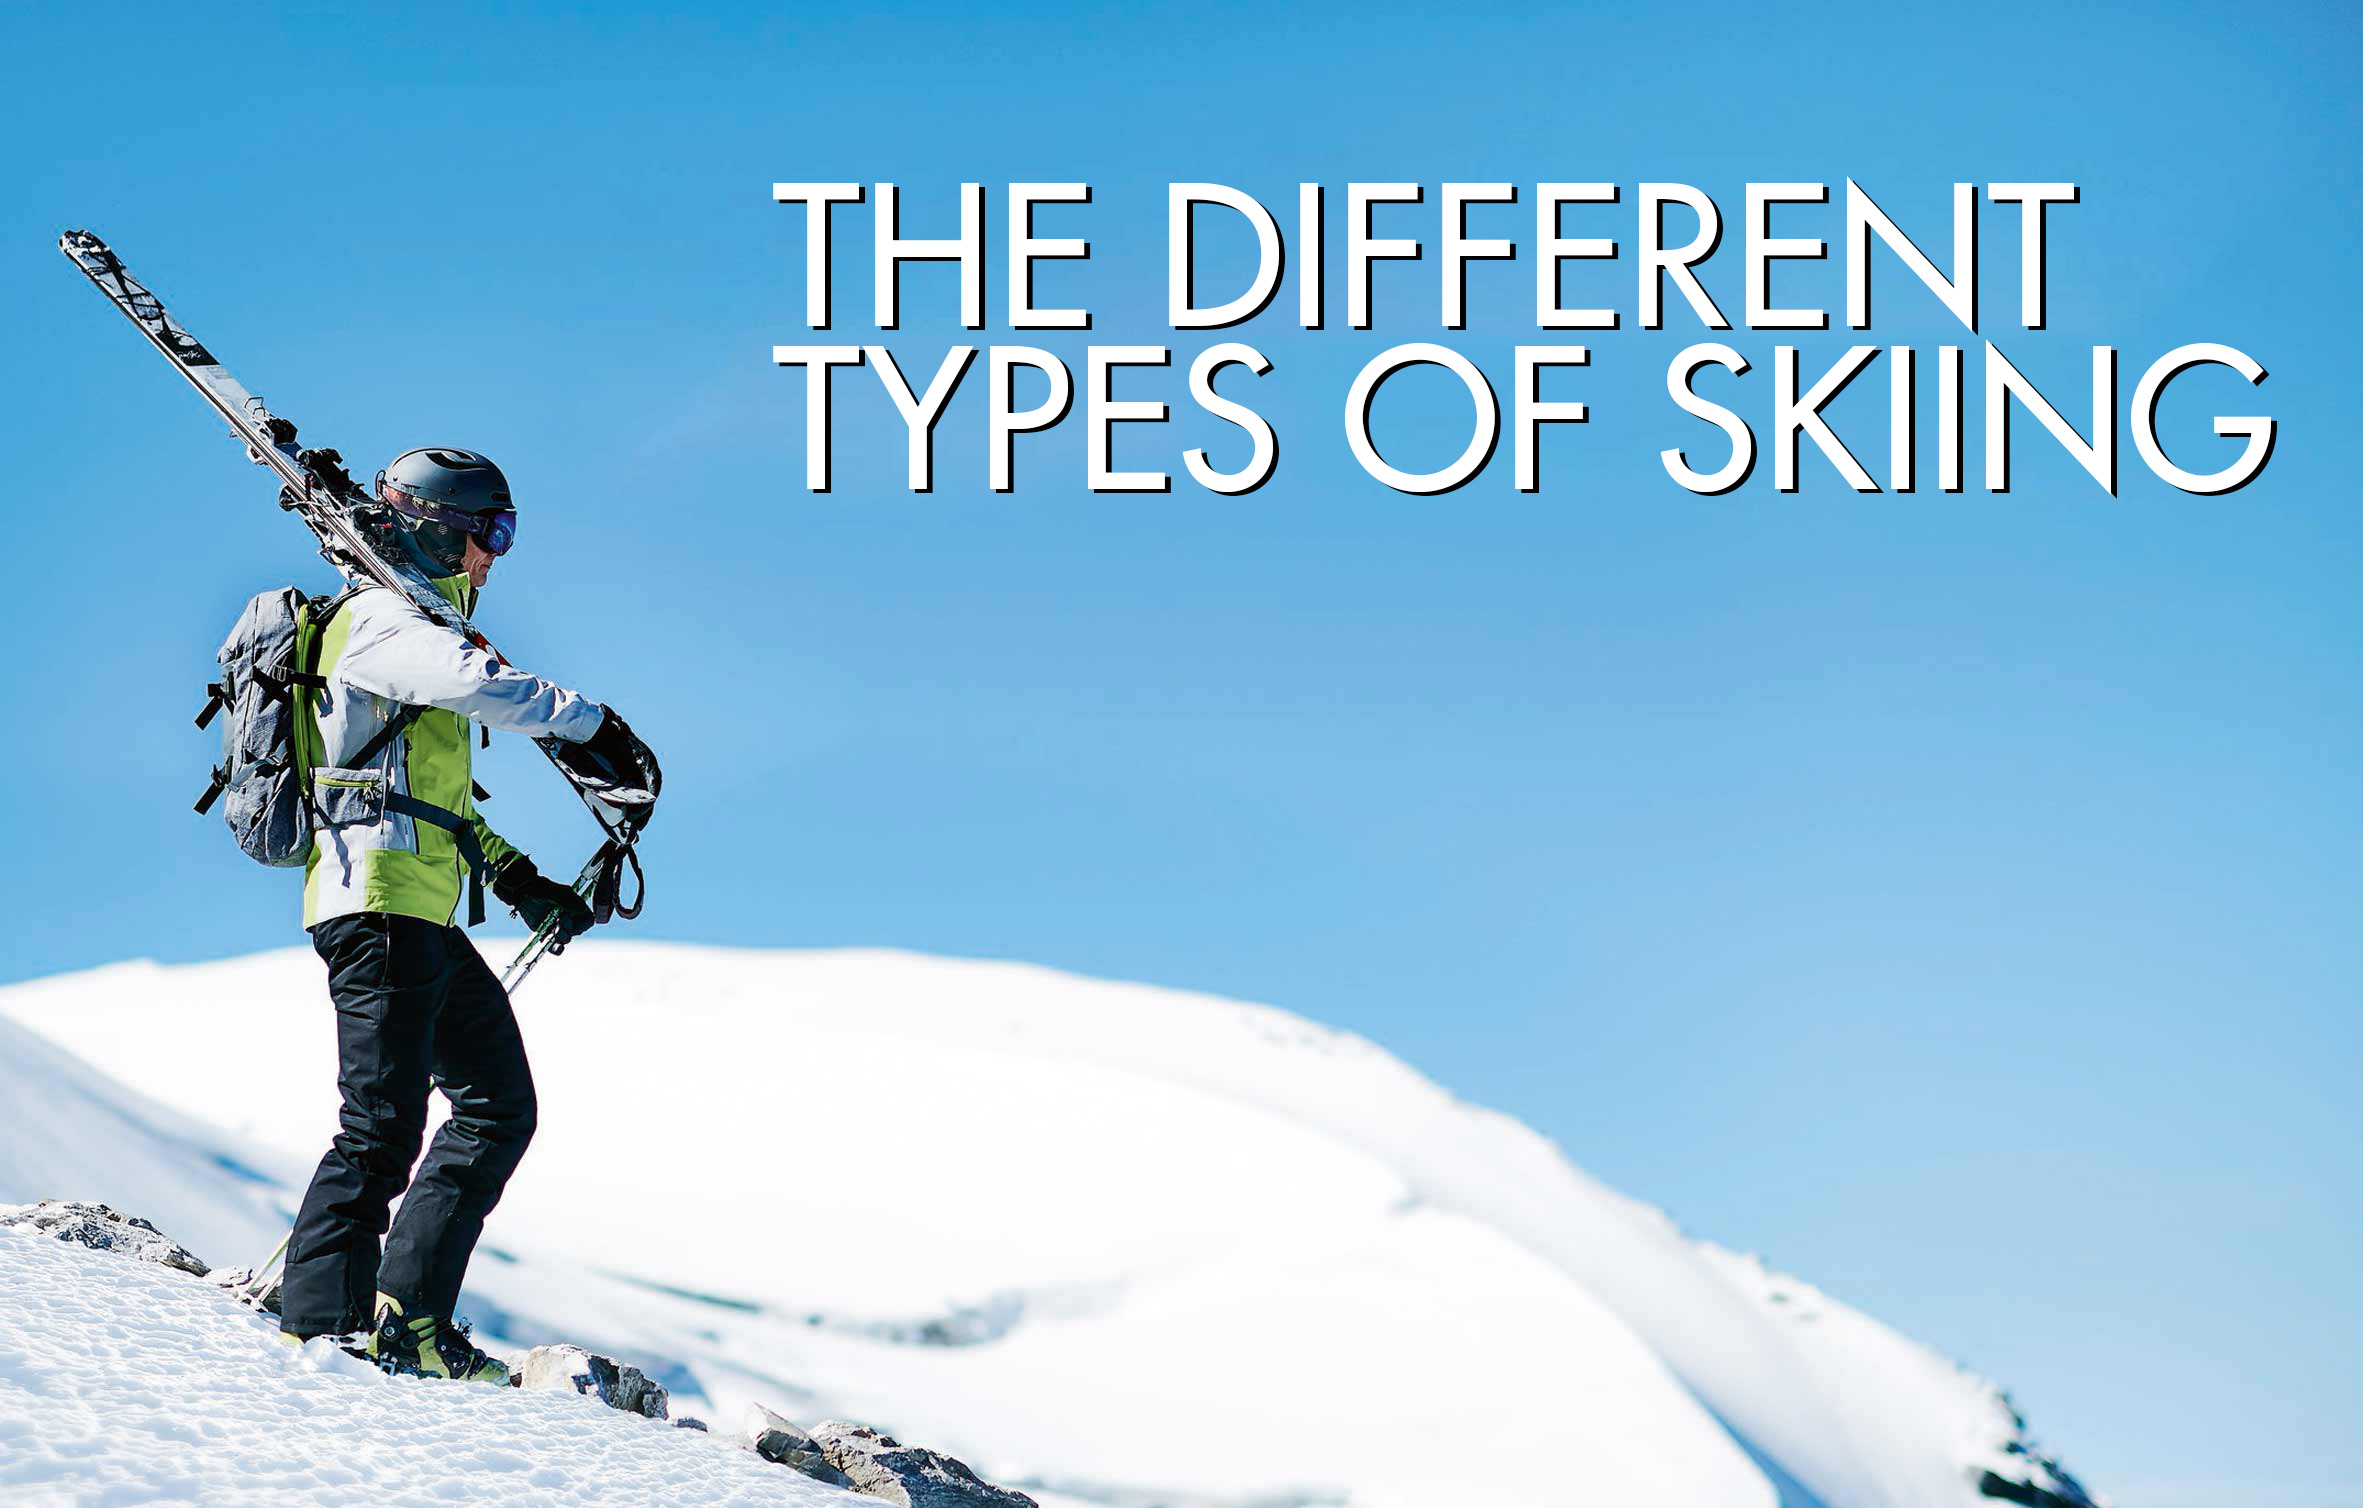 types of skiing banner